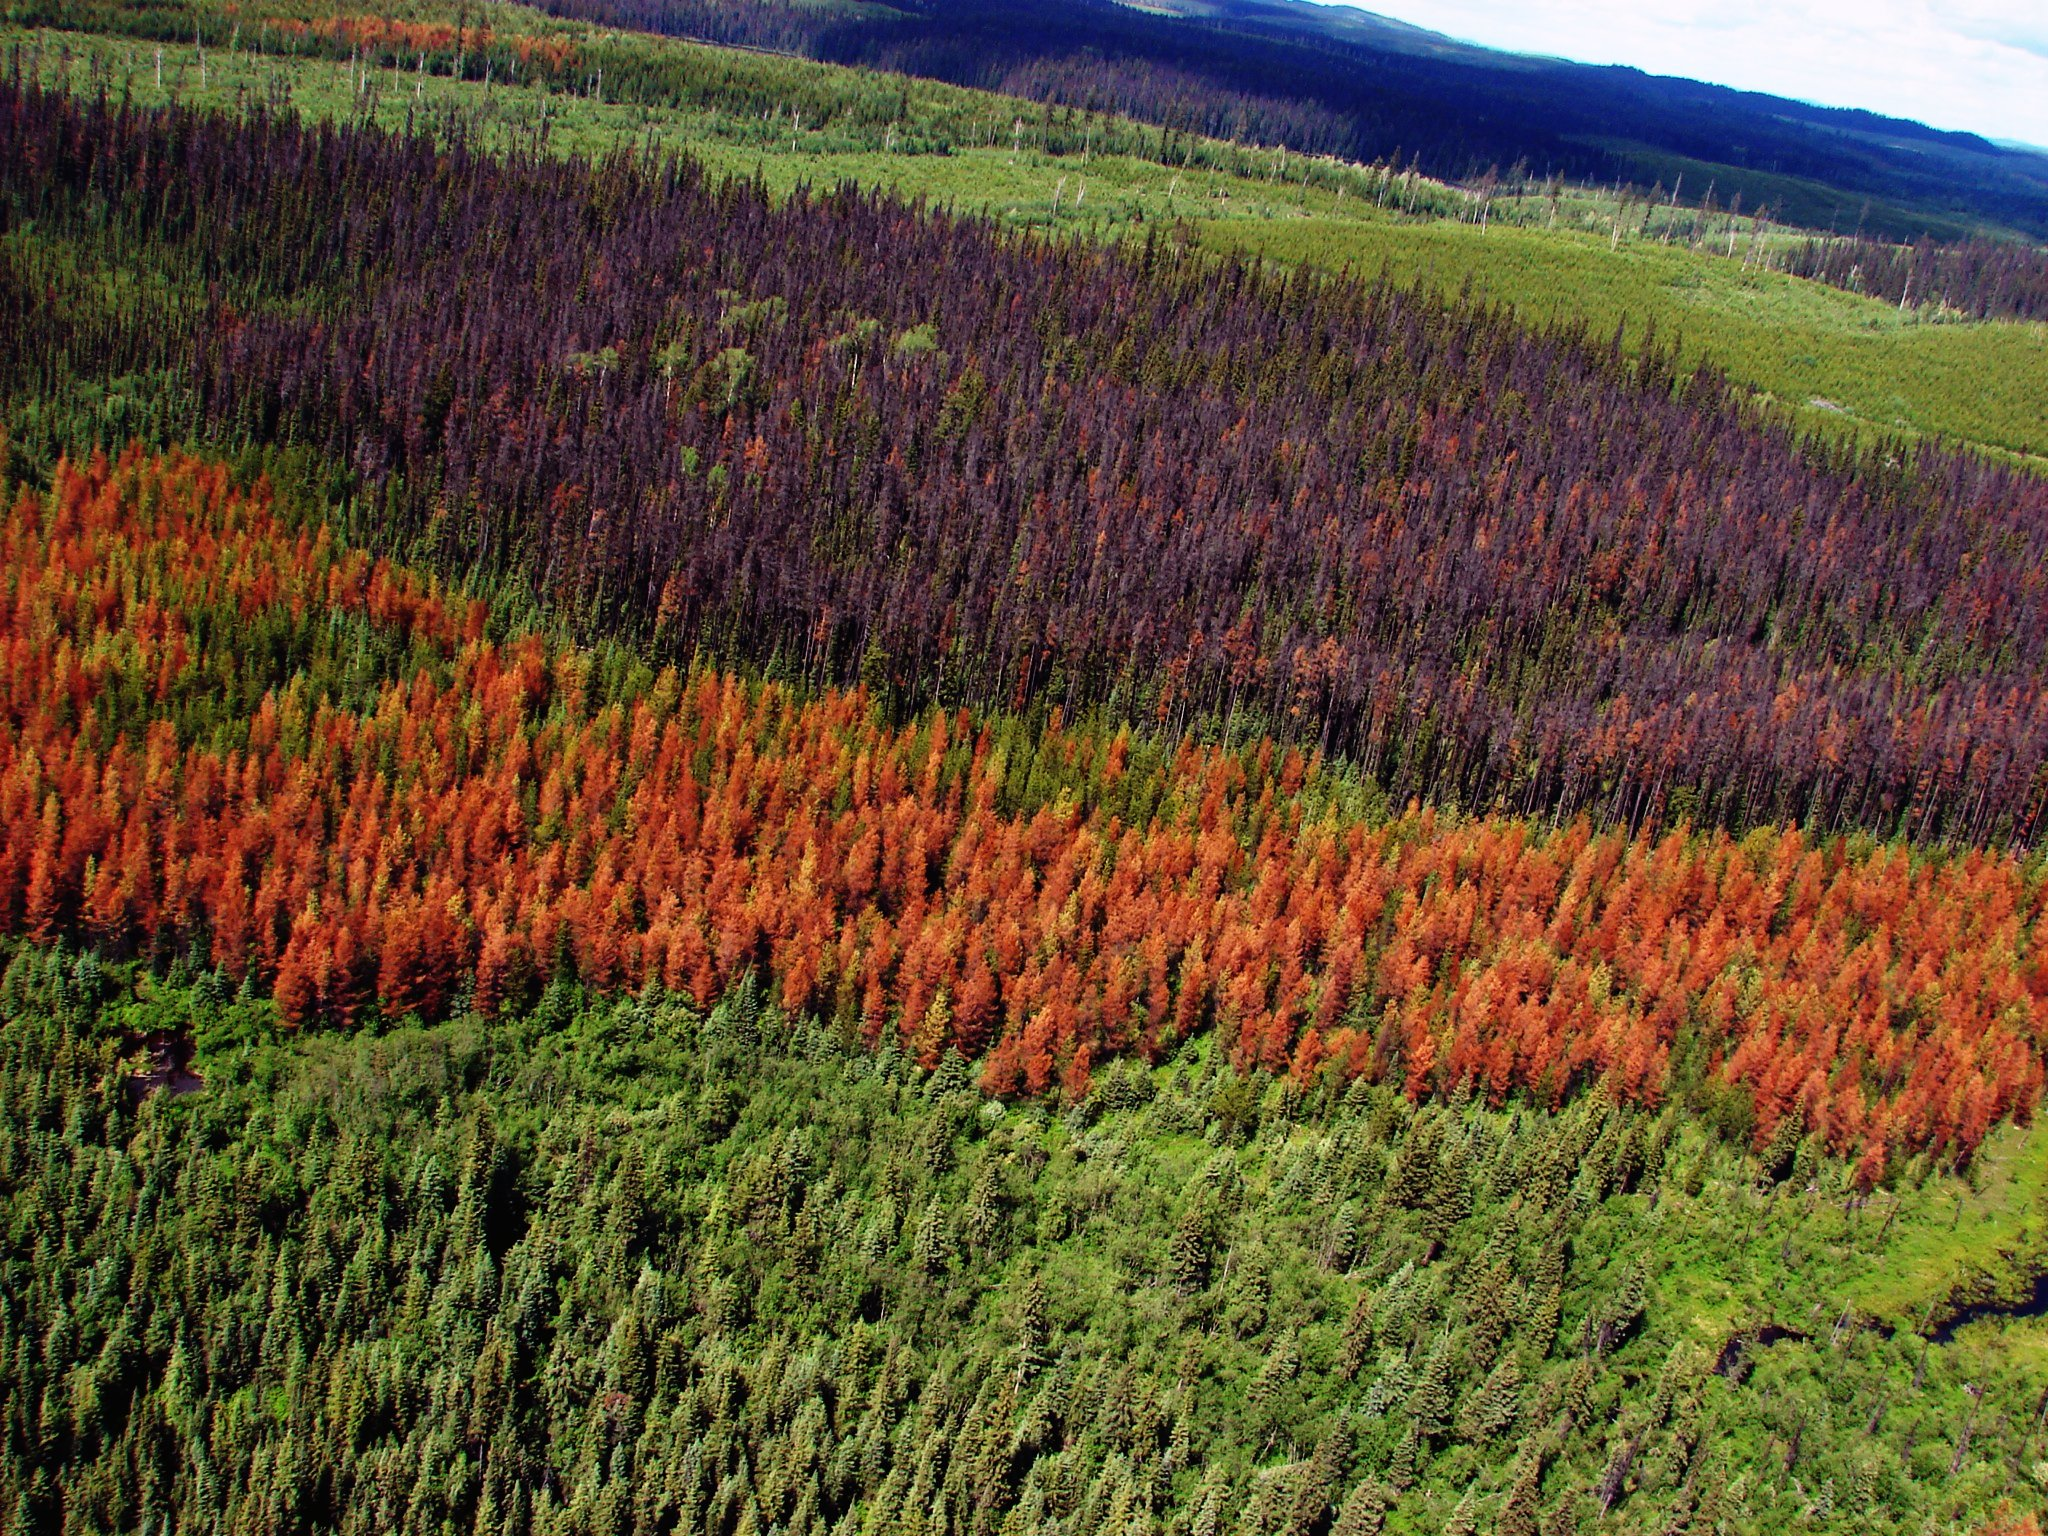 Forest damaged by the mountain pine beetle. Photo by: Dezene Huber, University of Northern British Columbia